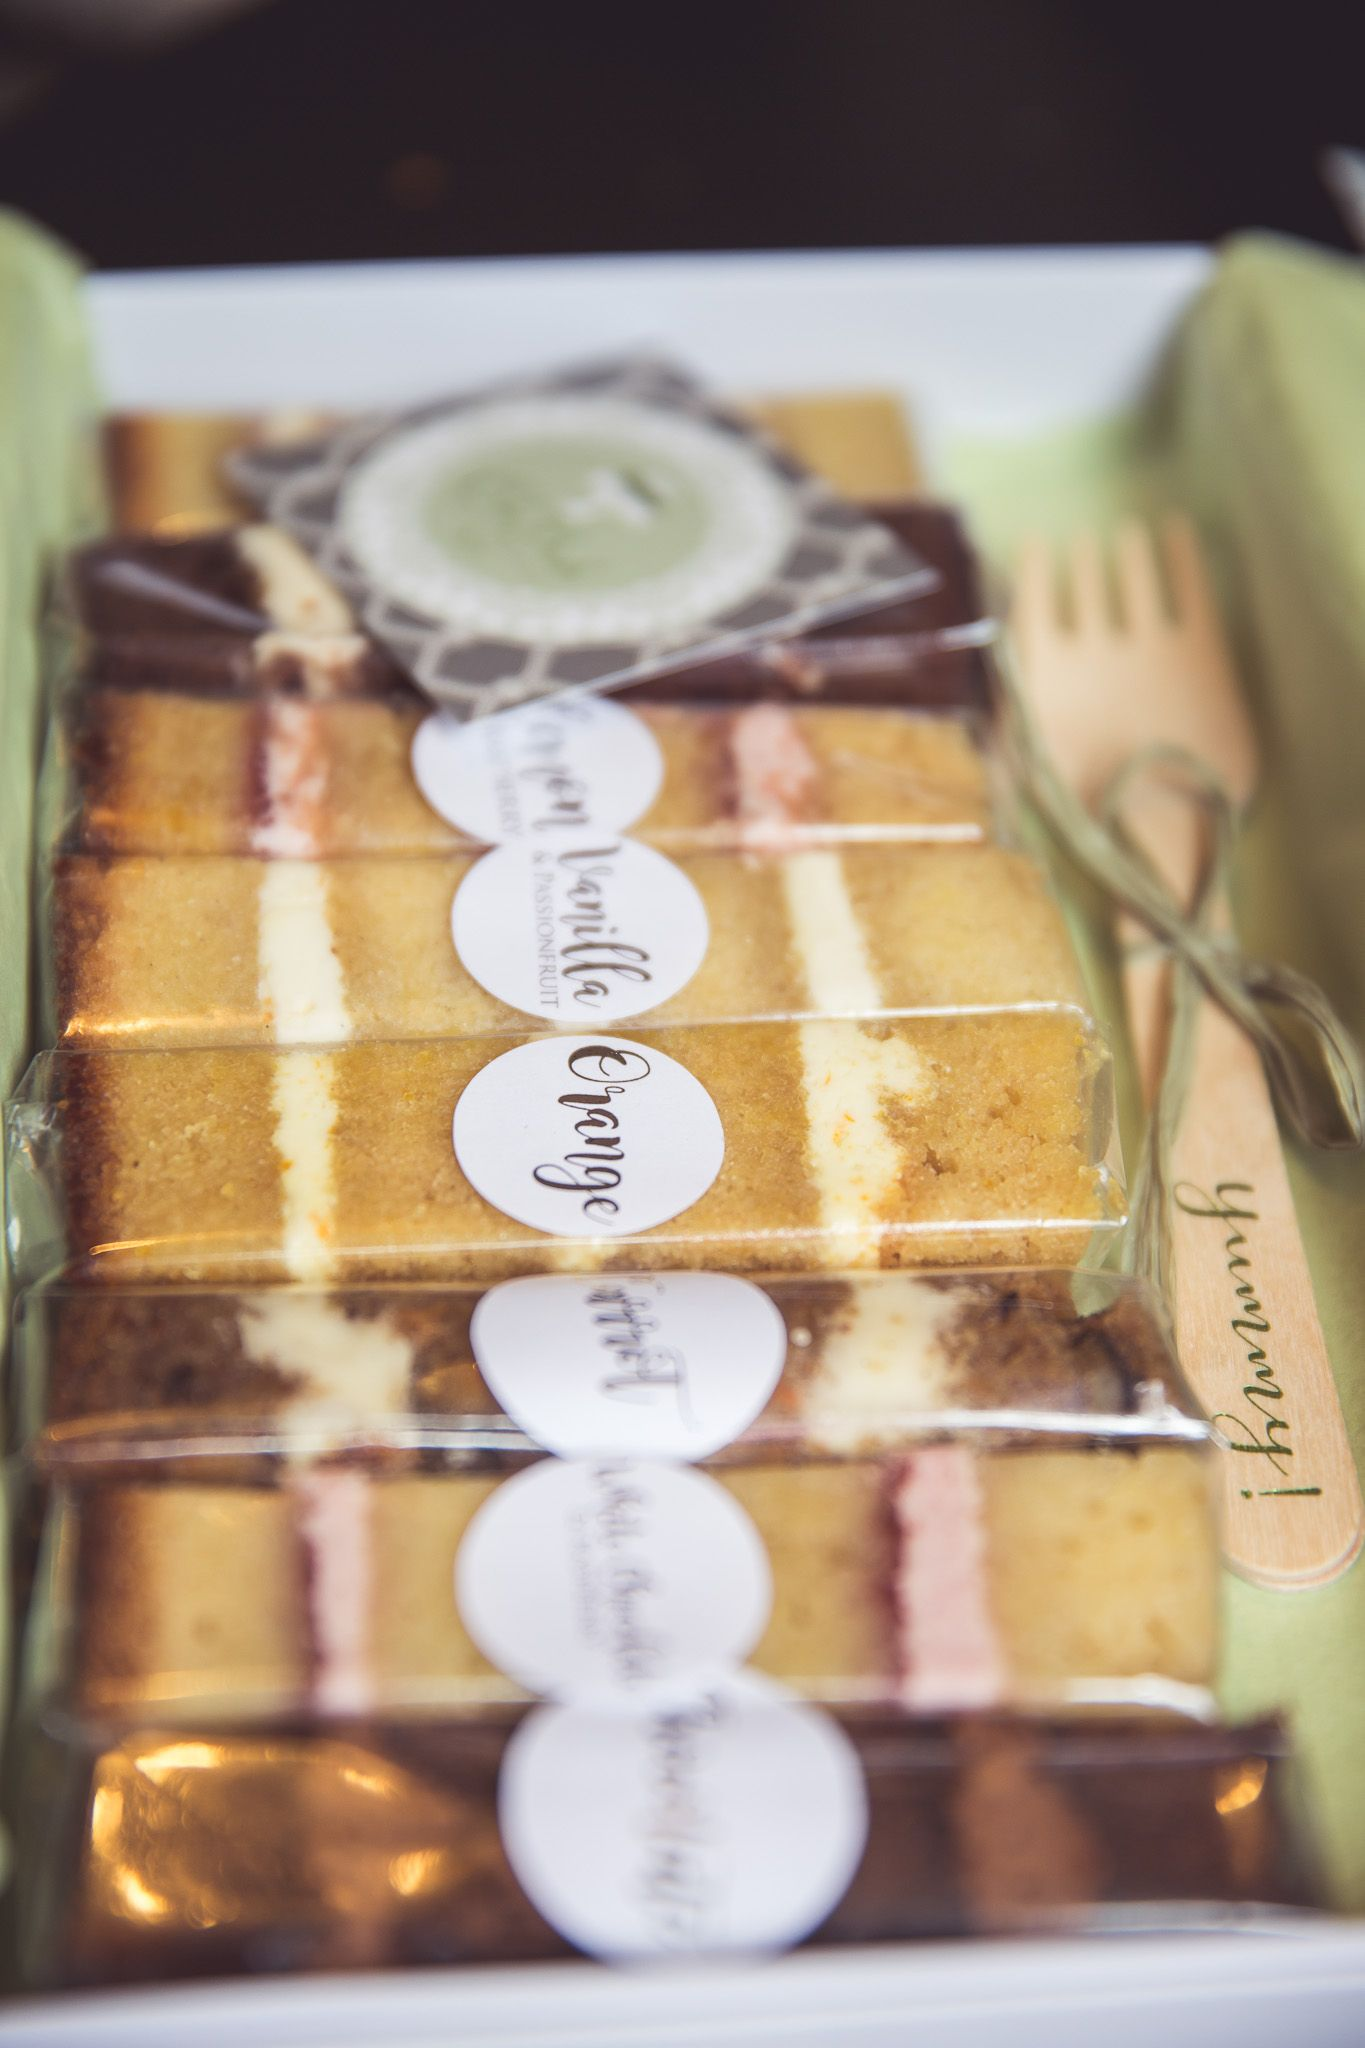 Cakebuds produces wedding cake sample boxes once per month